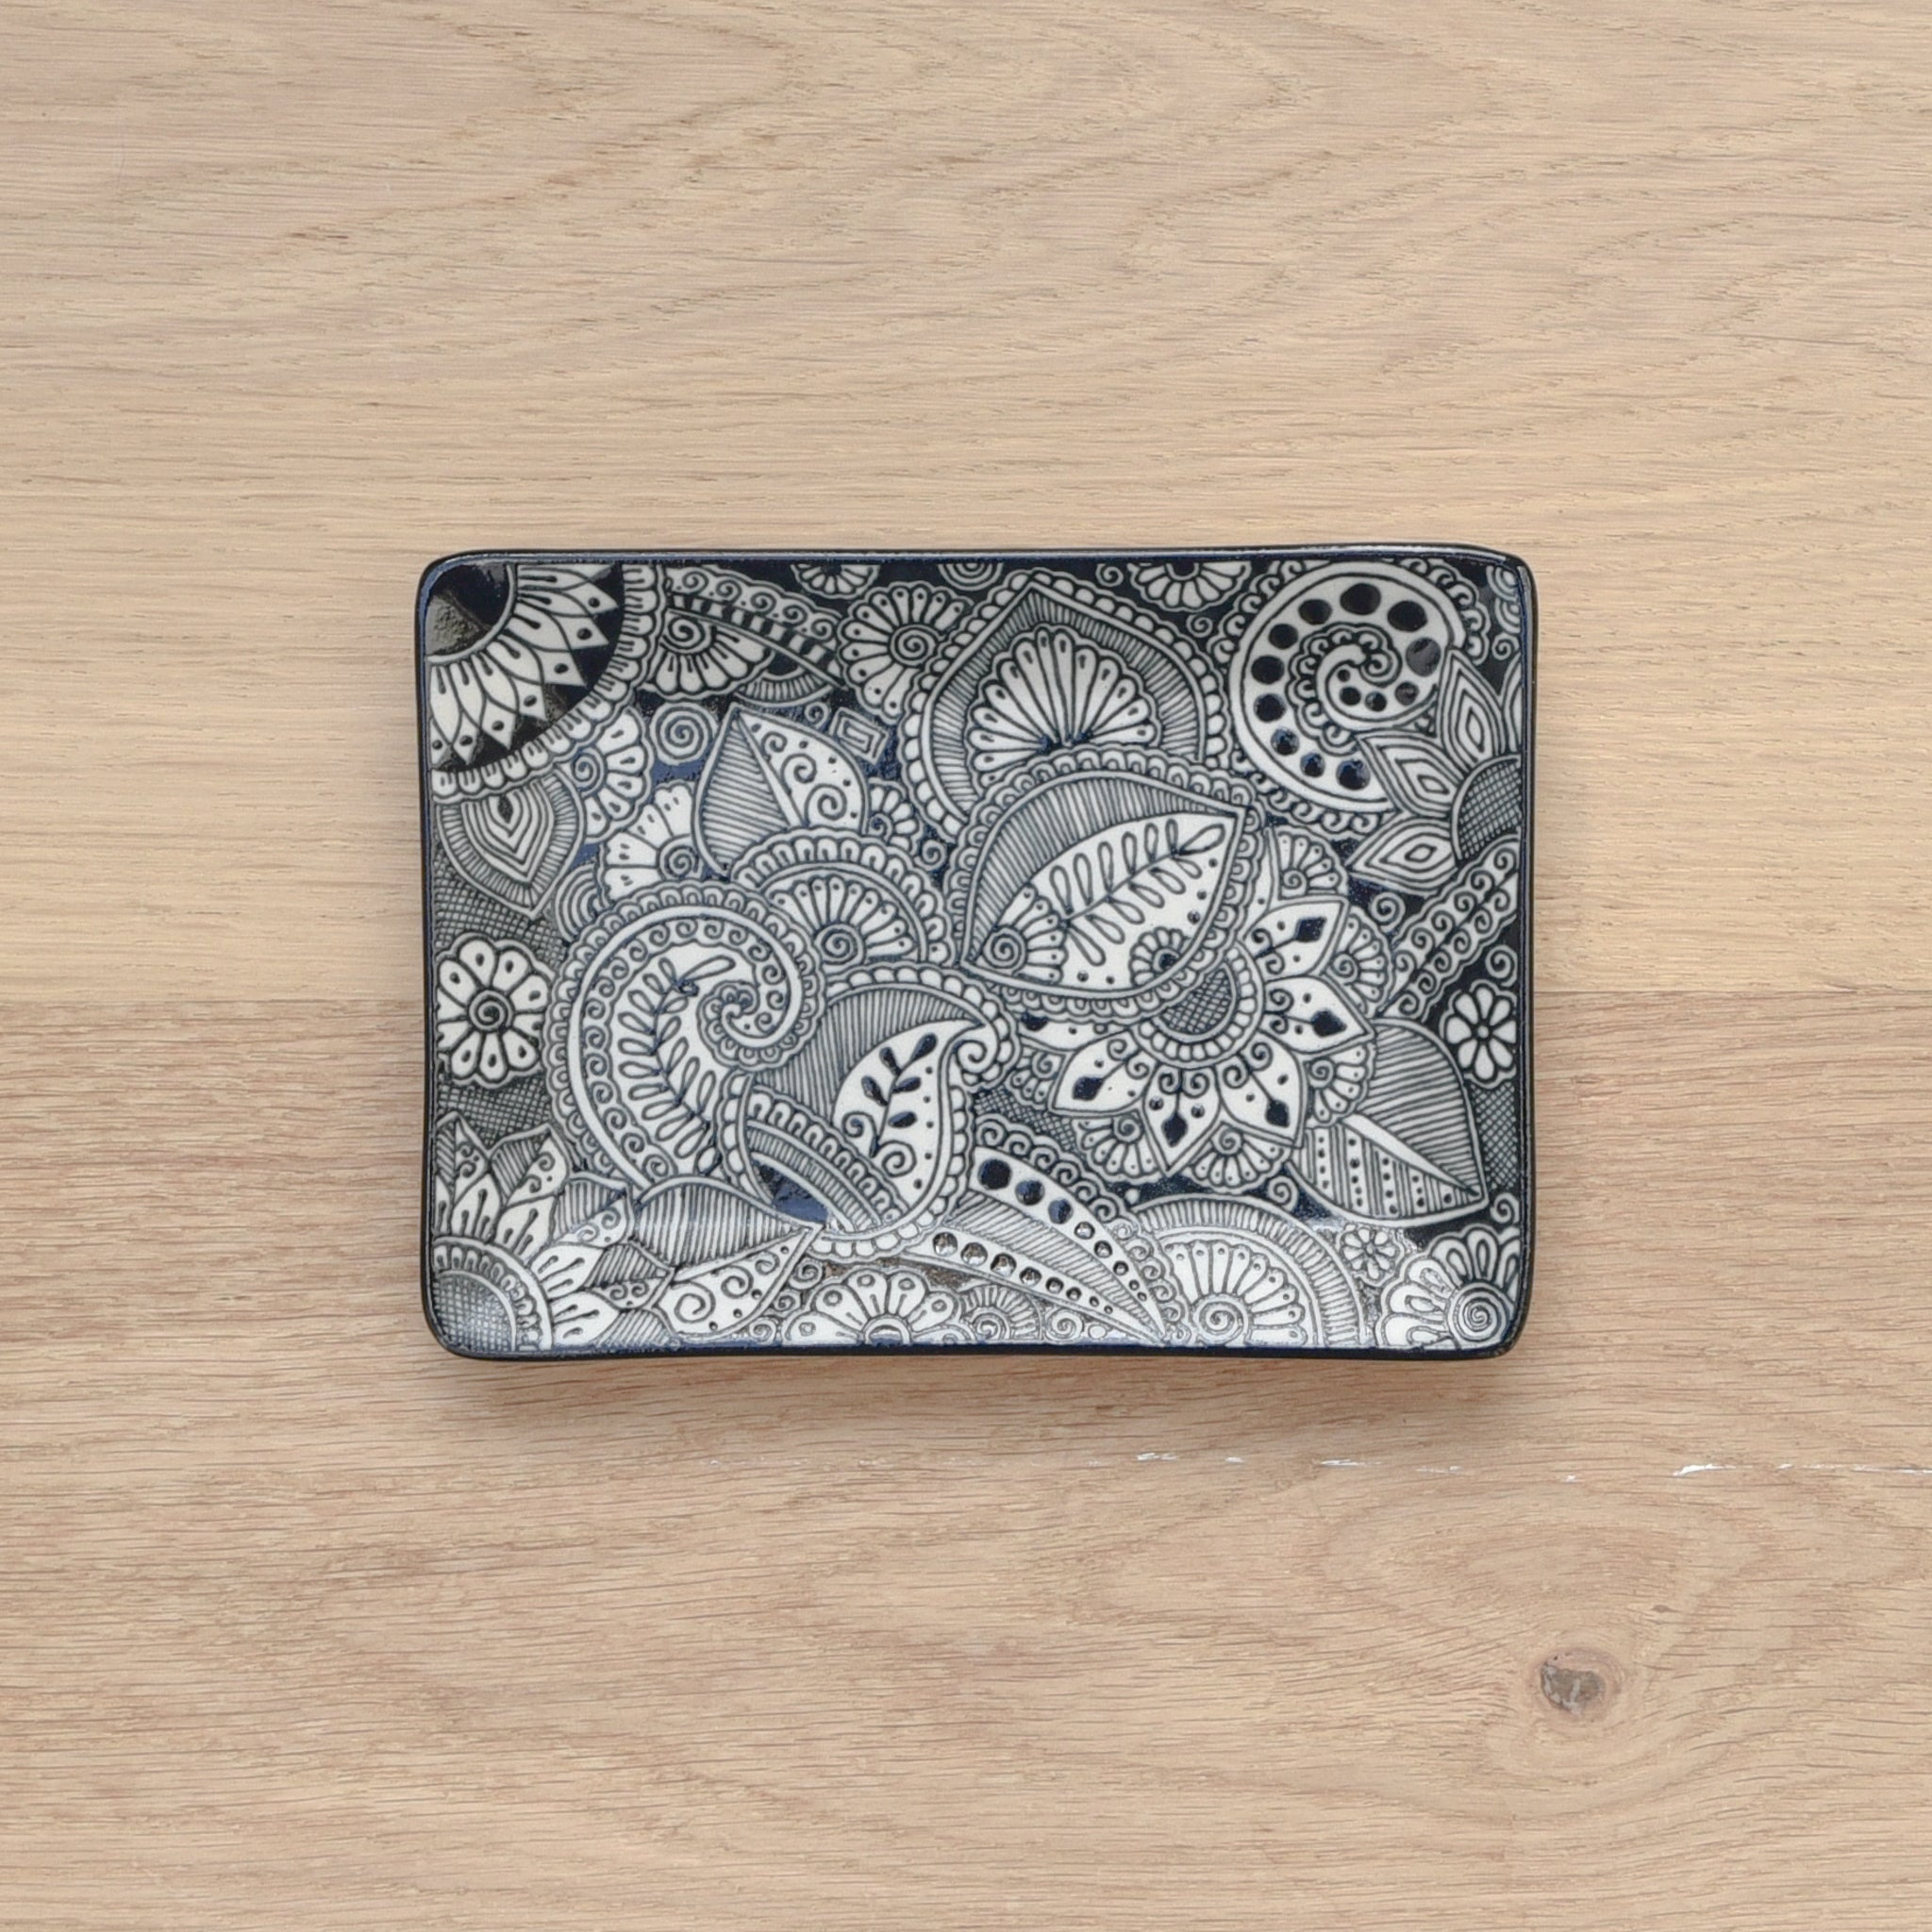 Handpainted Talavera-style ceramic tray in modern, black and white colors.